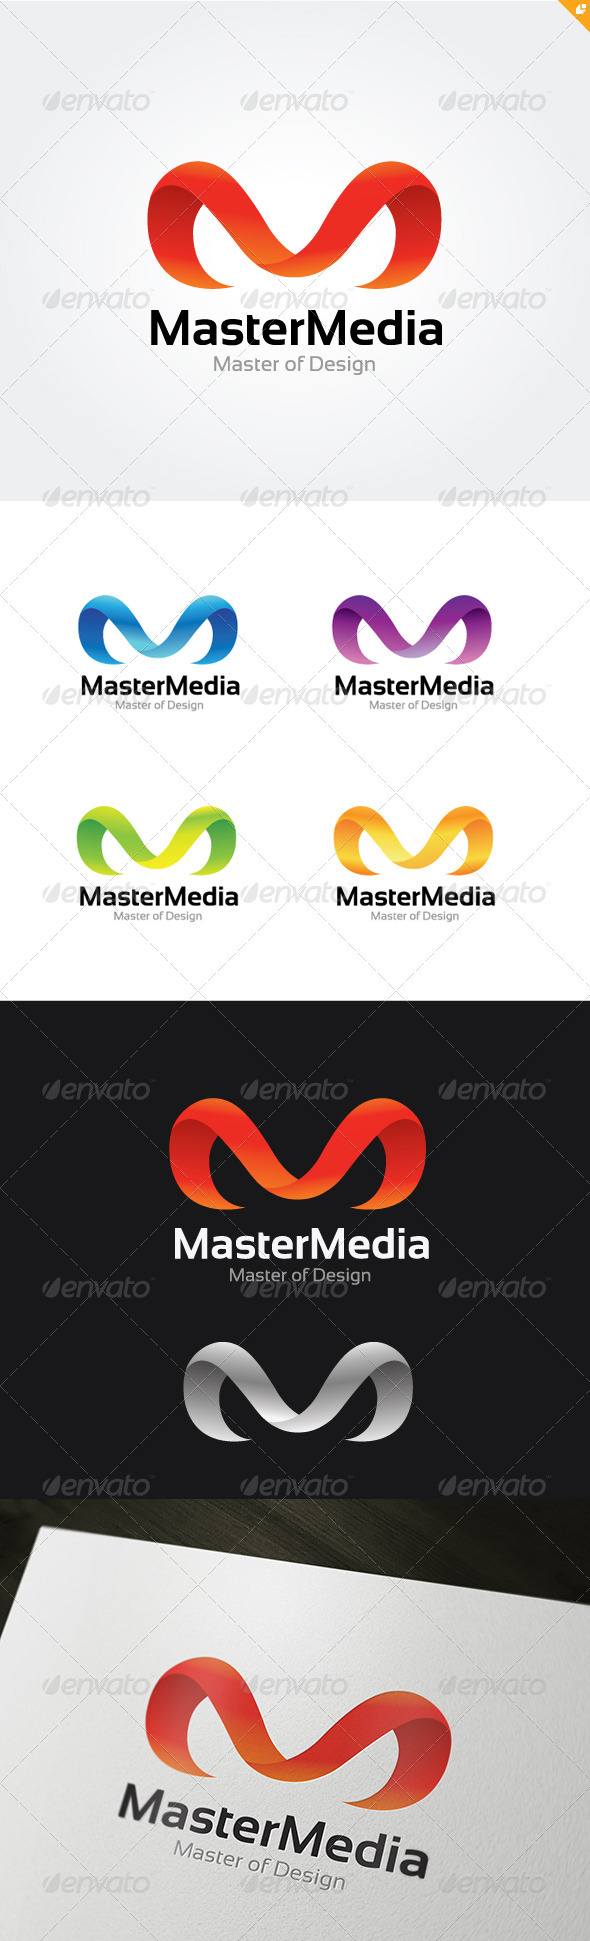 GraphicRiver Master Media Logo 3724624